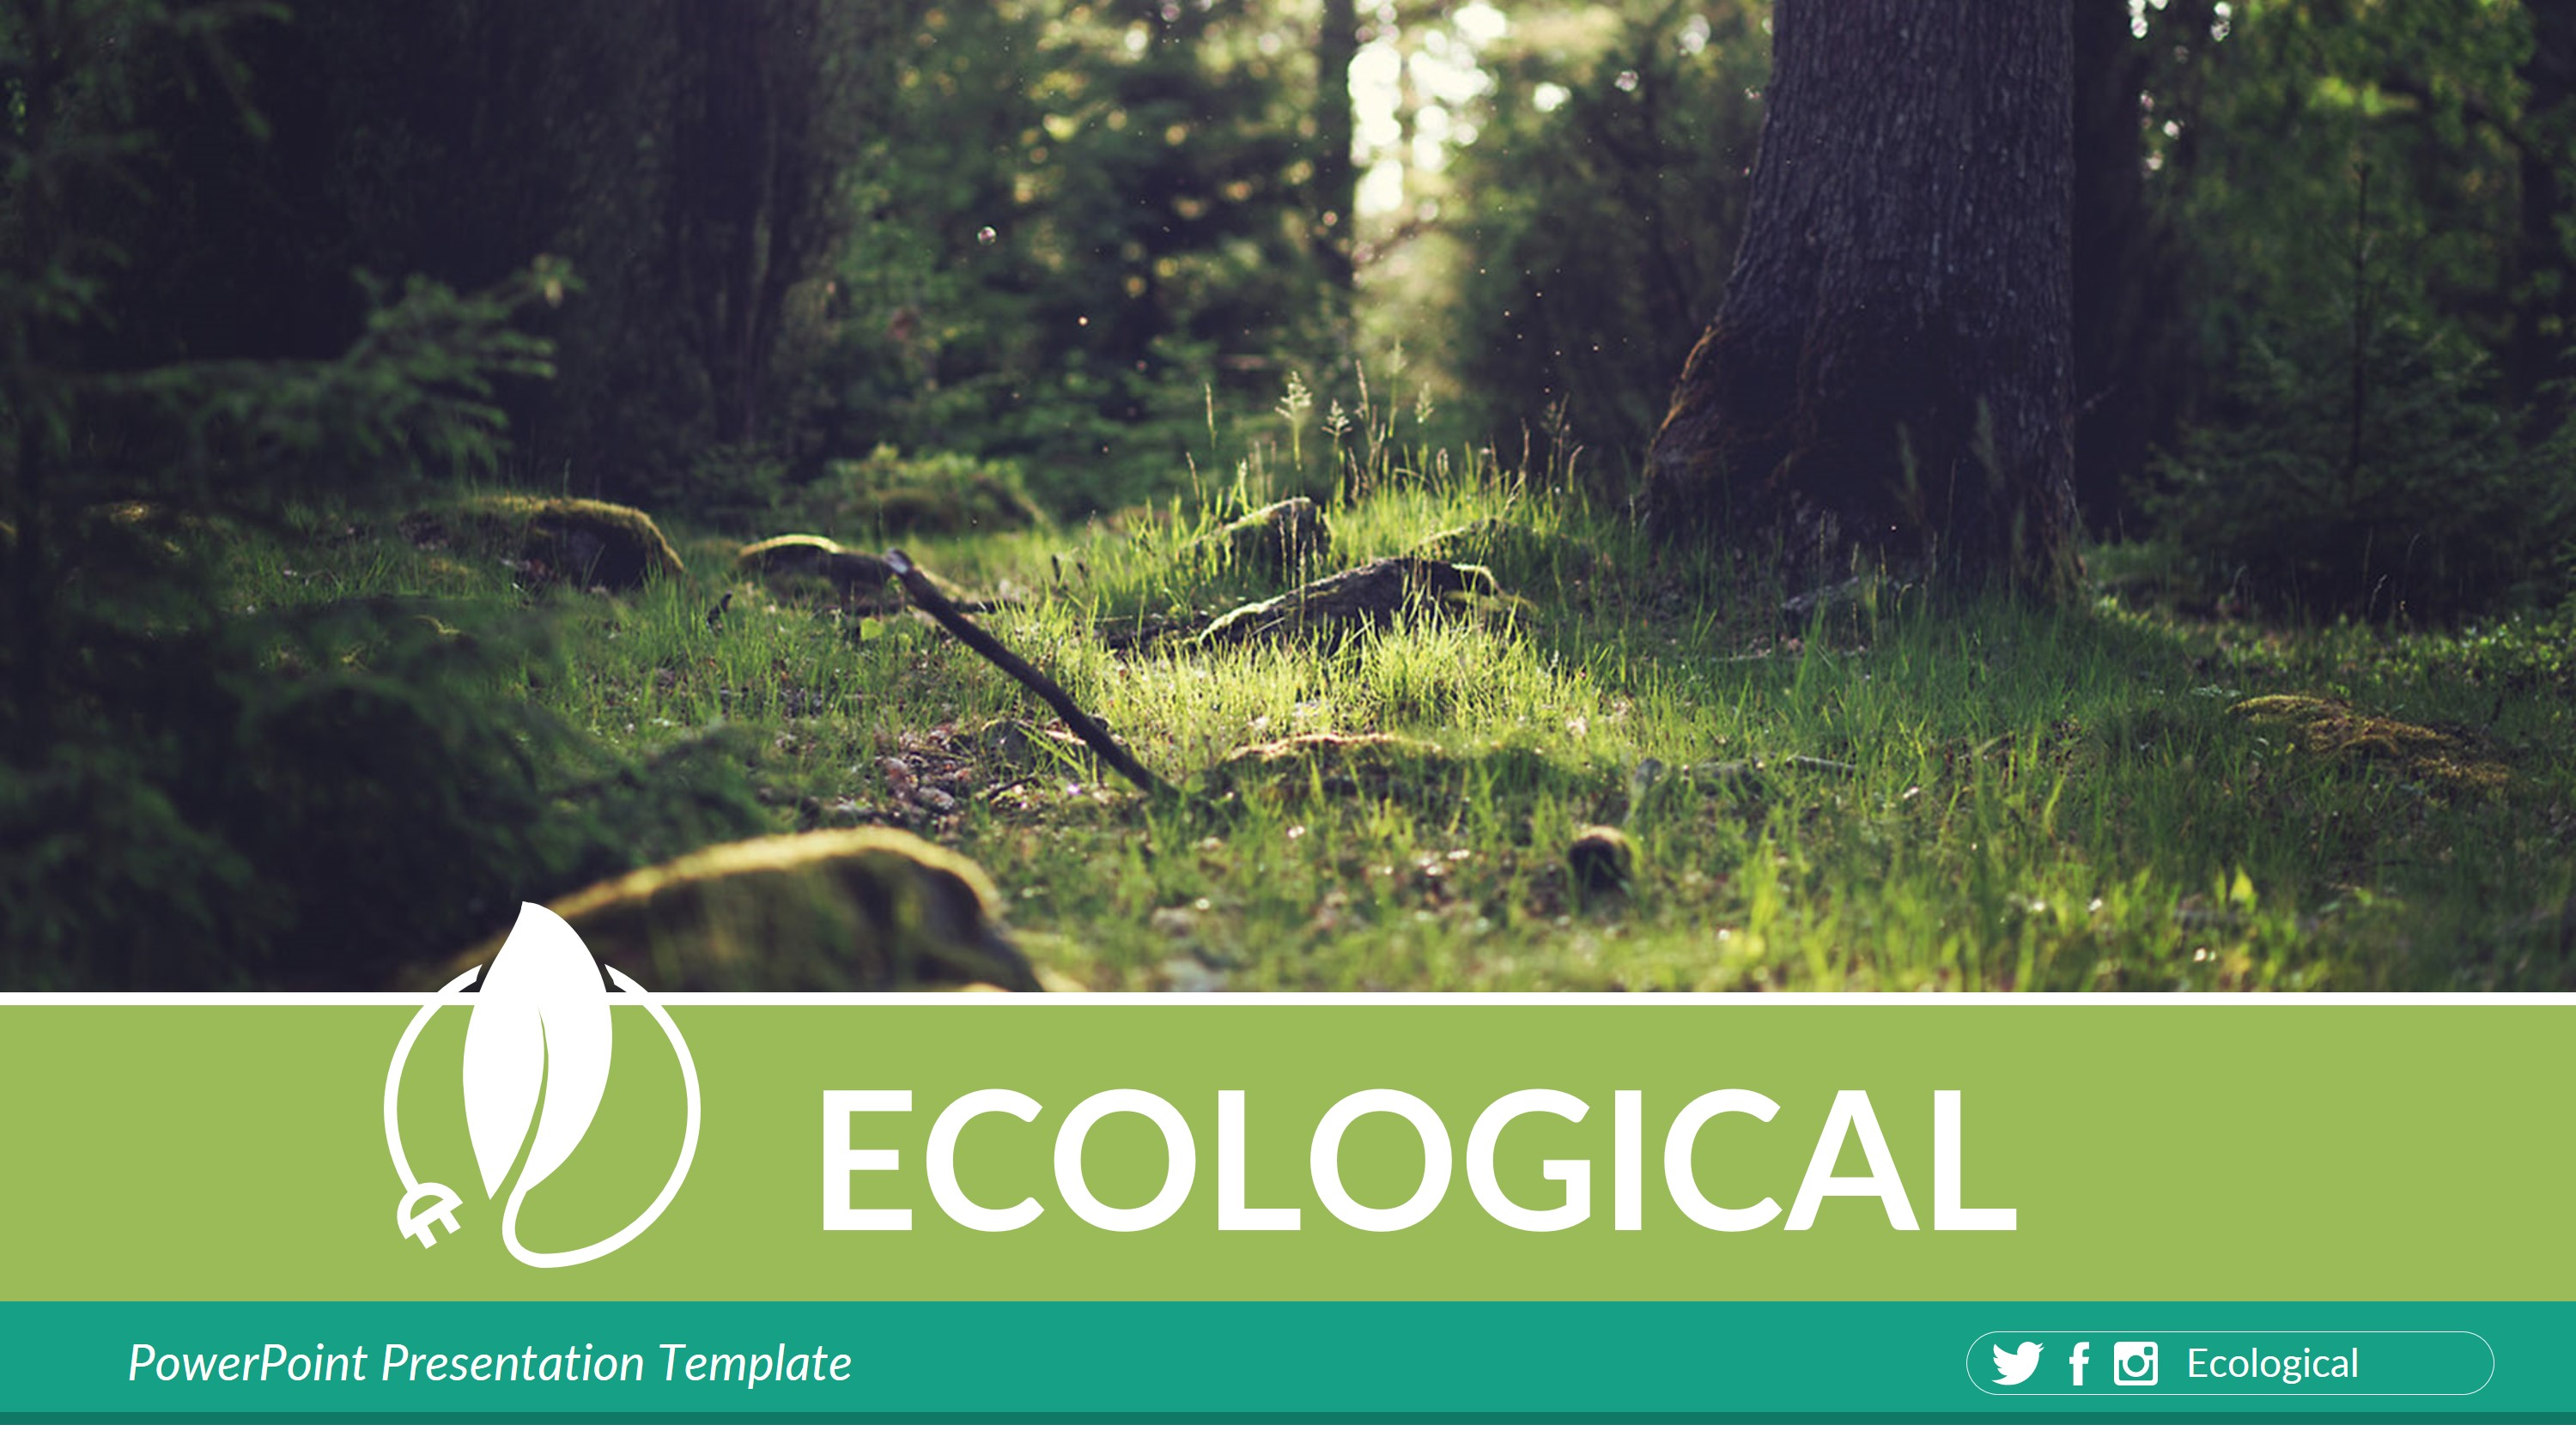 Ecological Powerpoint Presentation Template By Rengstudio Graphicriver